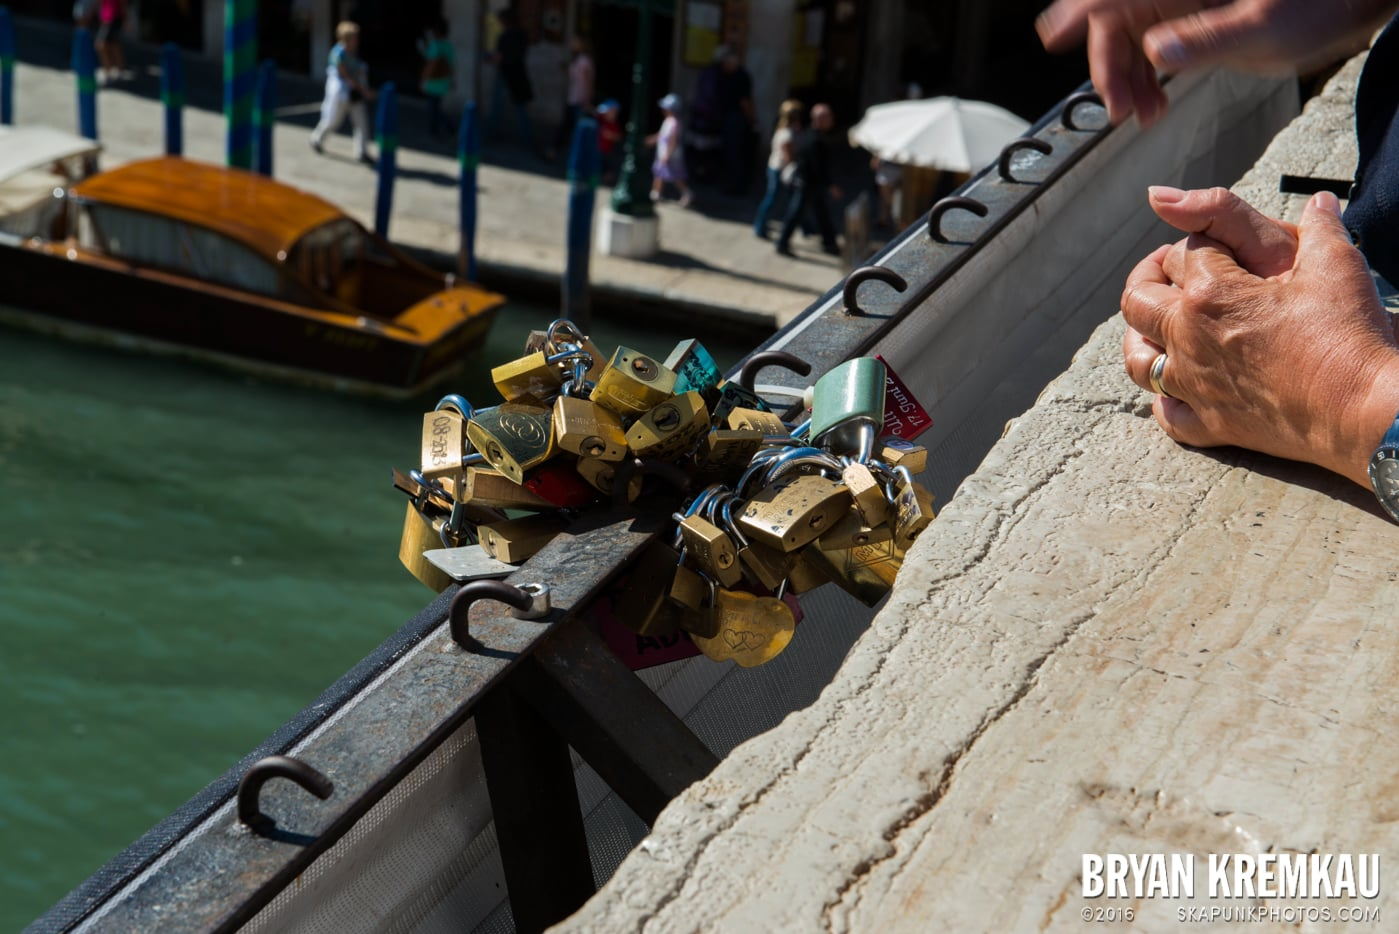 Italy Vacation - Day 4: Venice - 9.12.13 (59)